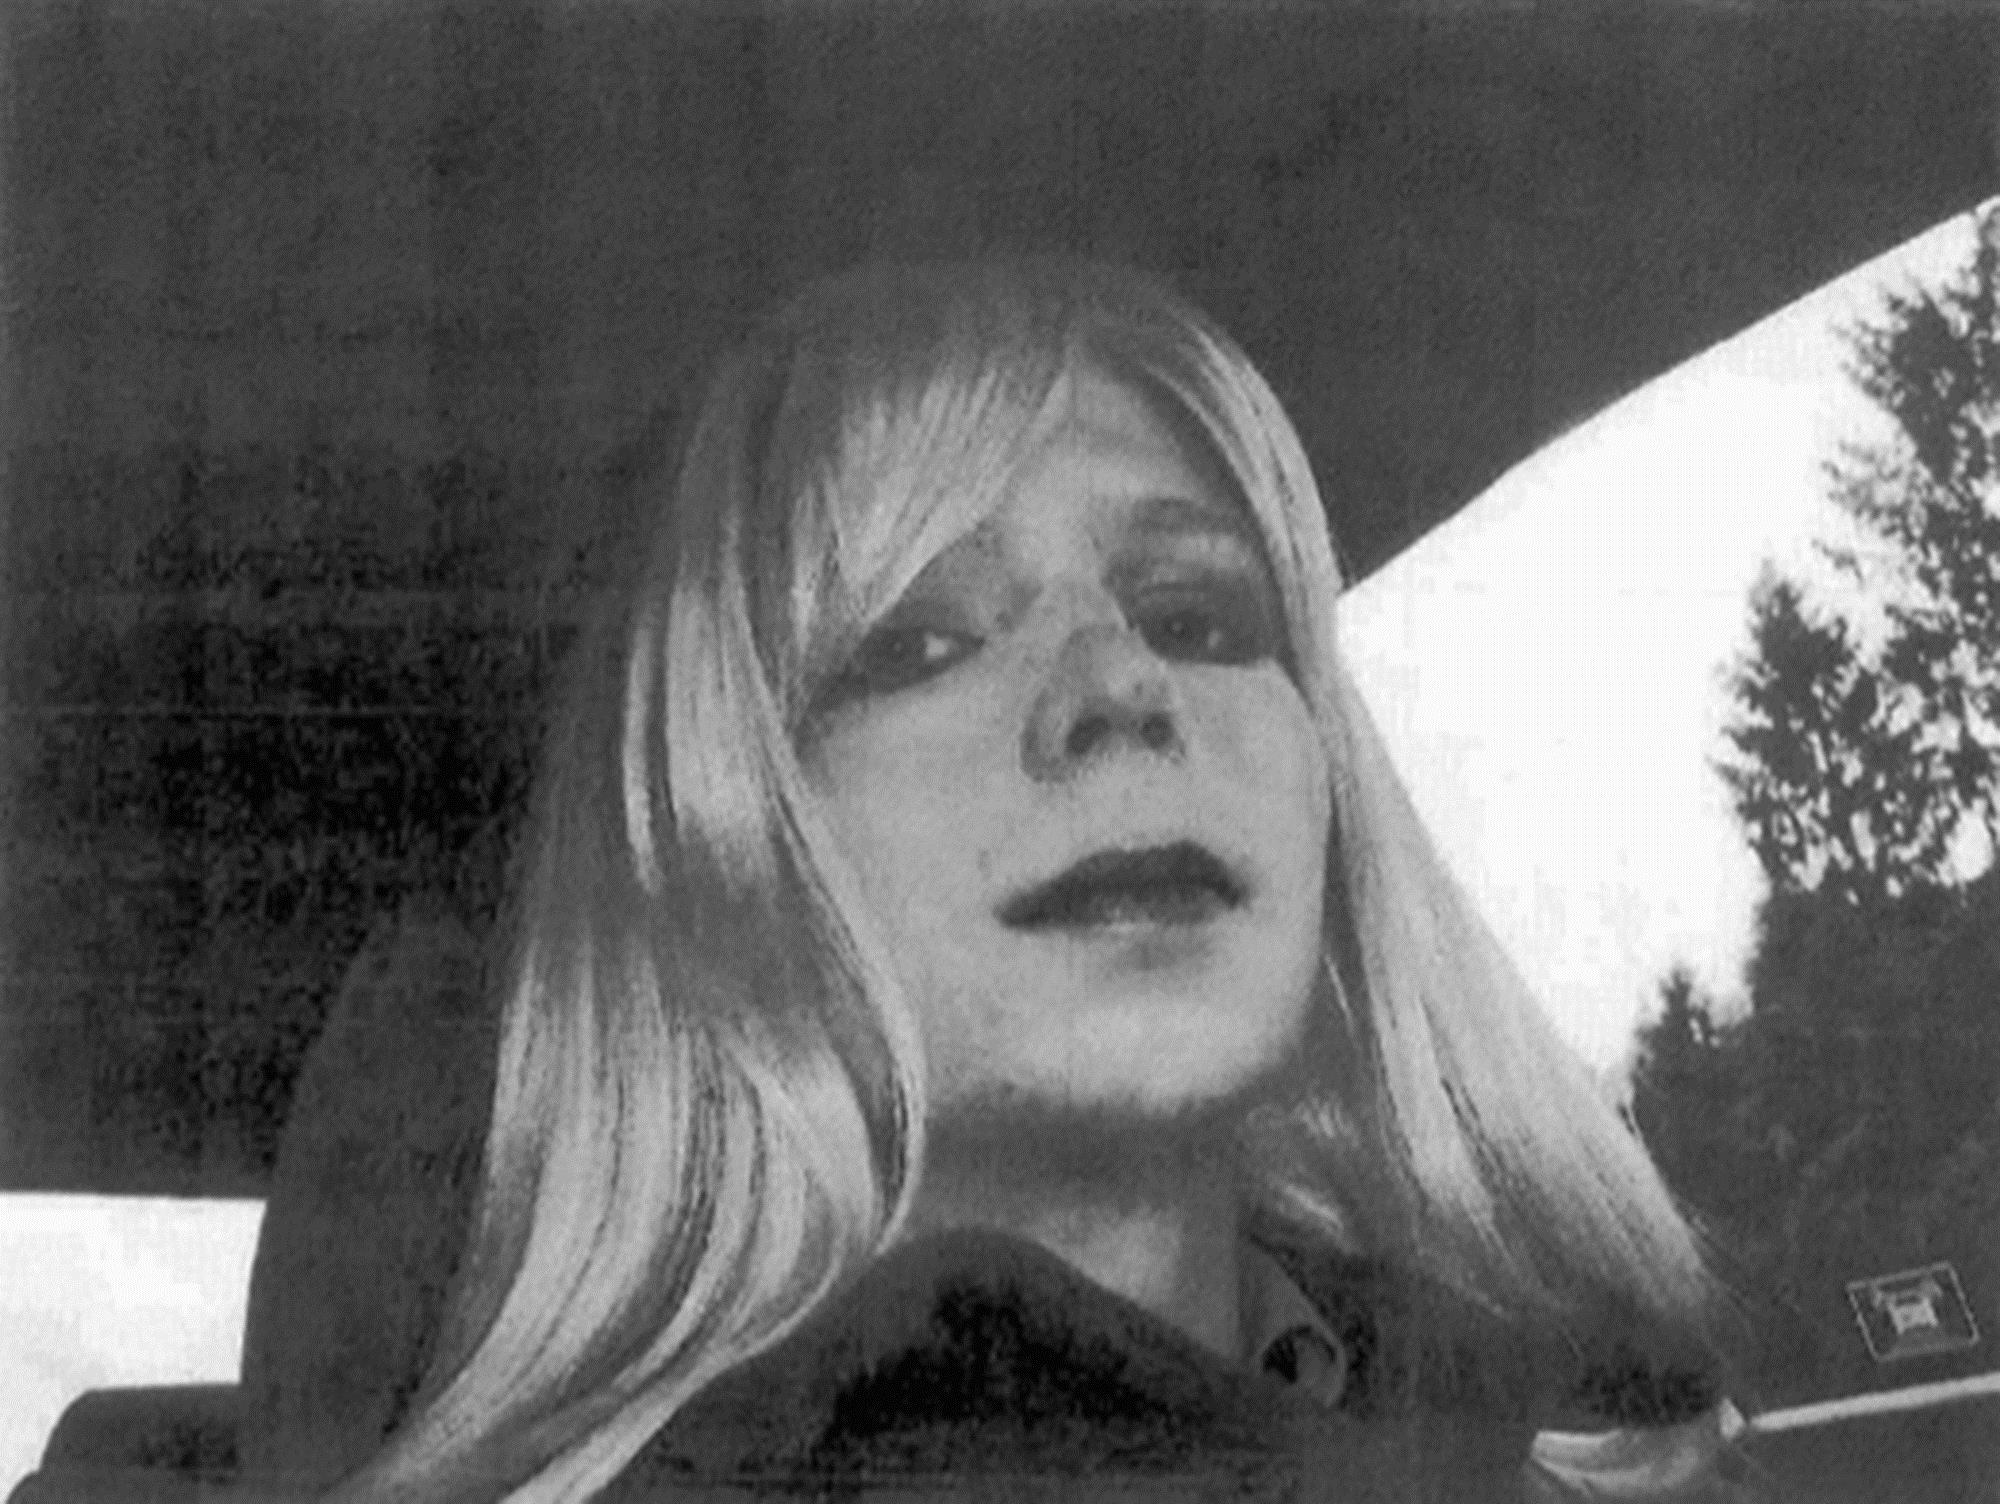 Pfc. Chelsea Manning poses in this undated file photo provided by the U.S. Army.